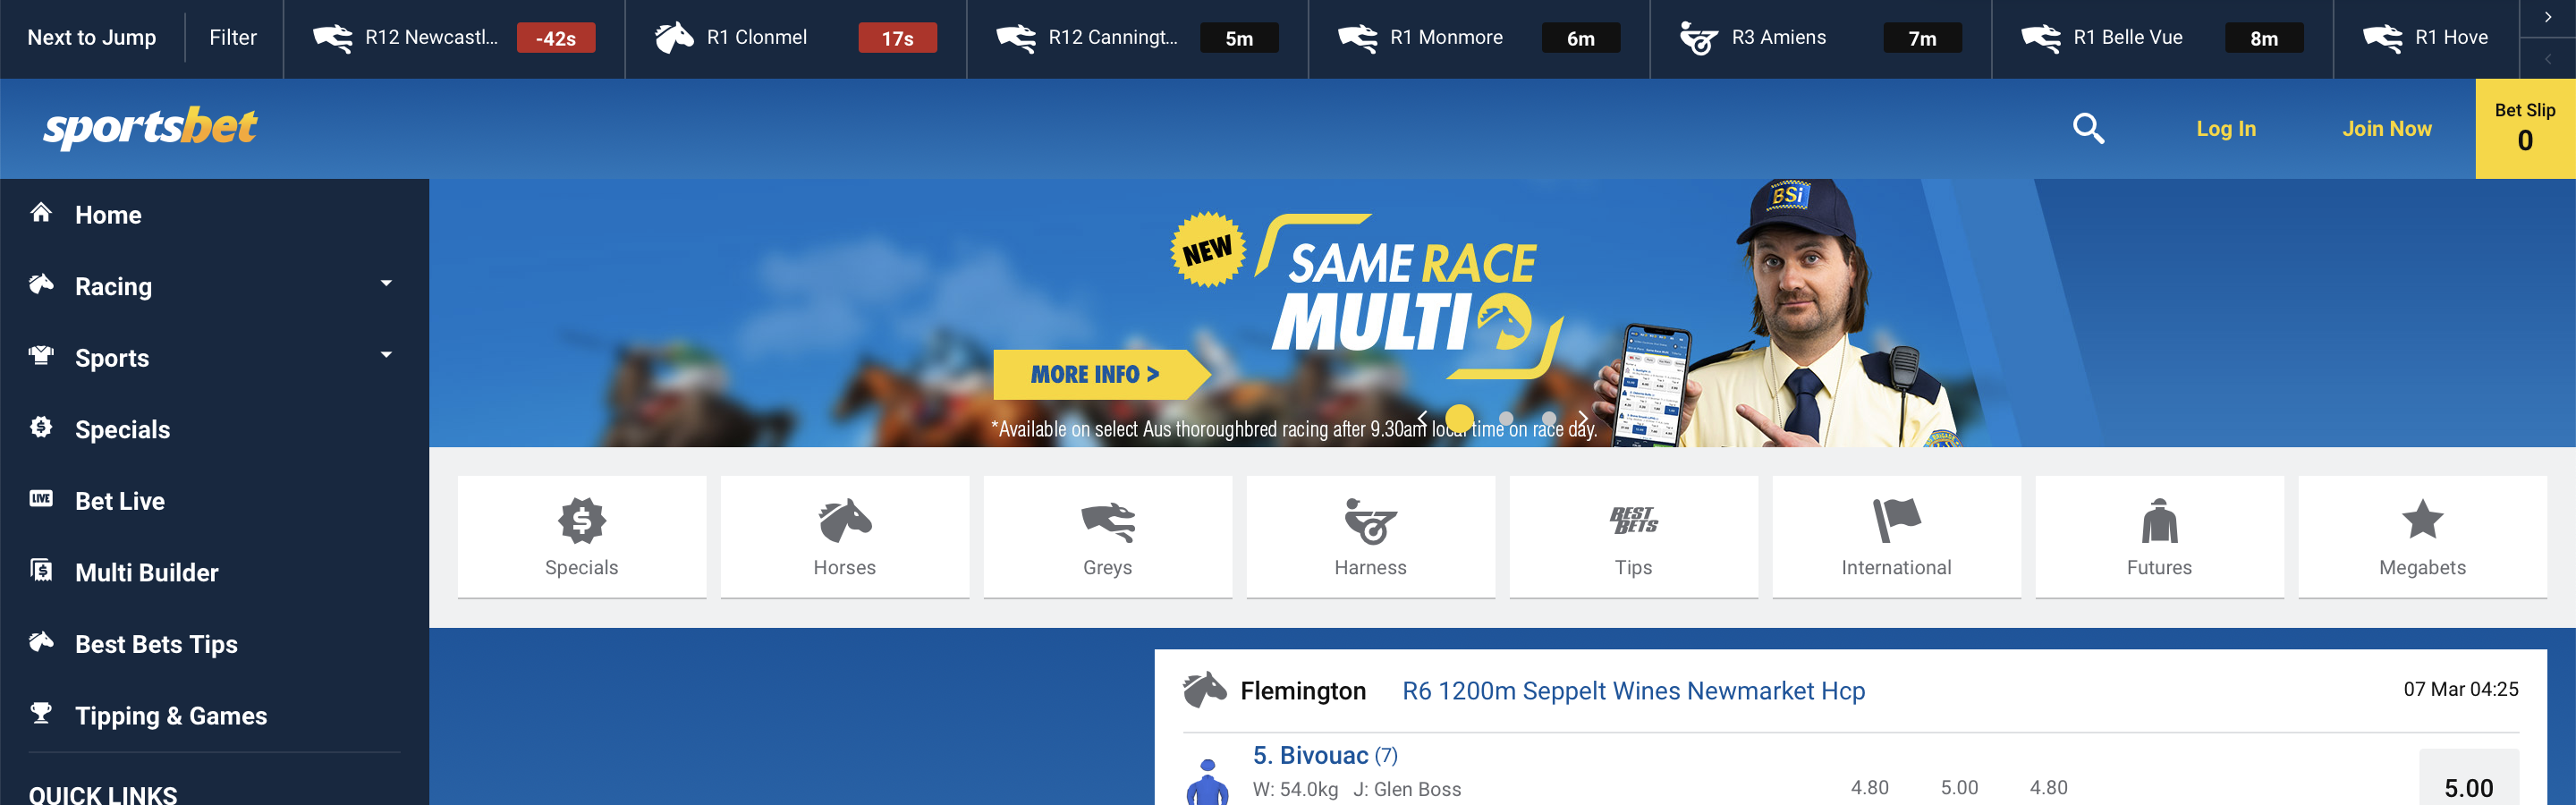 Sportsbet Homepage Interface